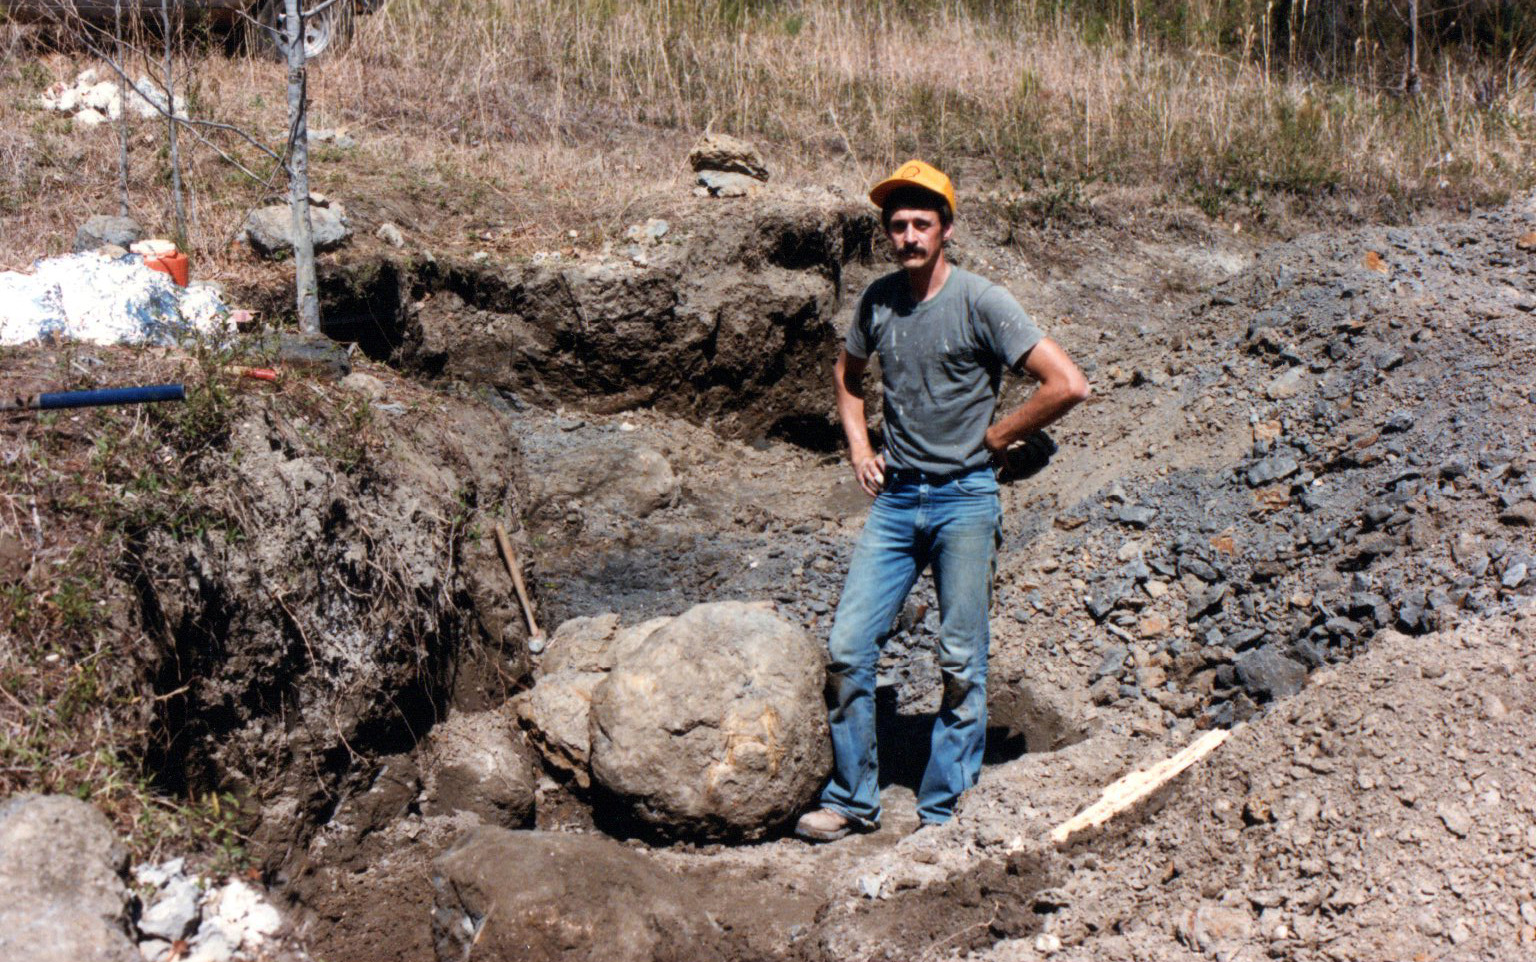 Very large concretion with multiple Upper Cretaceous crab fossils inside